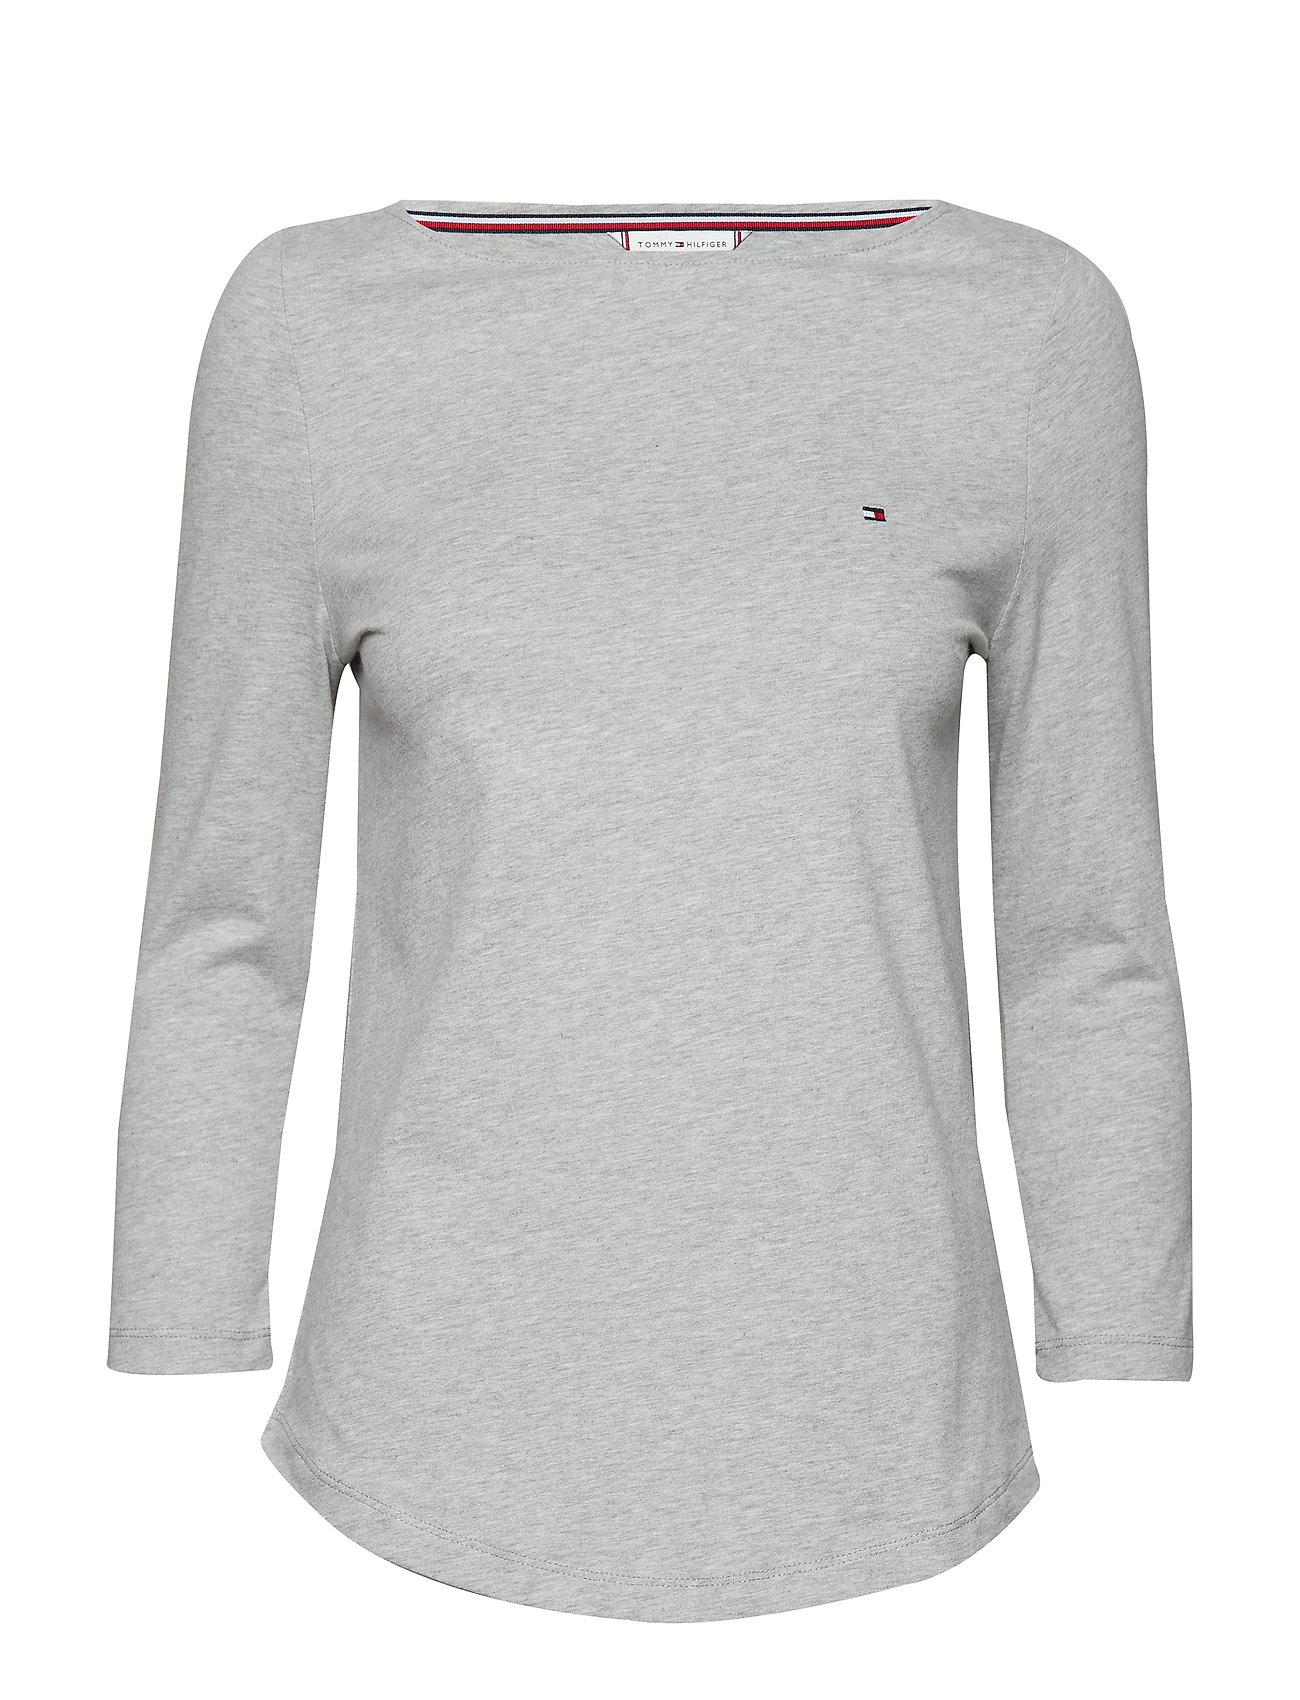 Tommy Hilfiger LUCY BOAT-NK TOP 3/4 - LIGHT GREY HTR